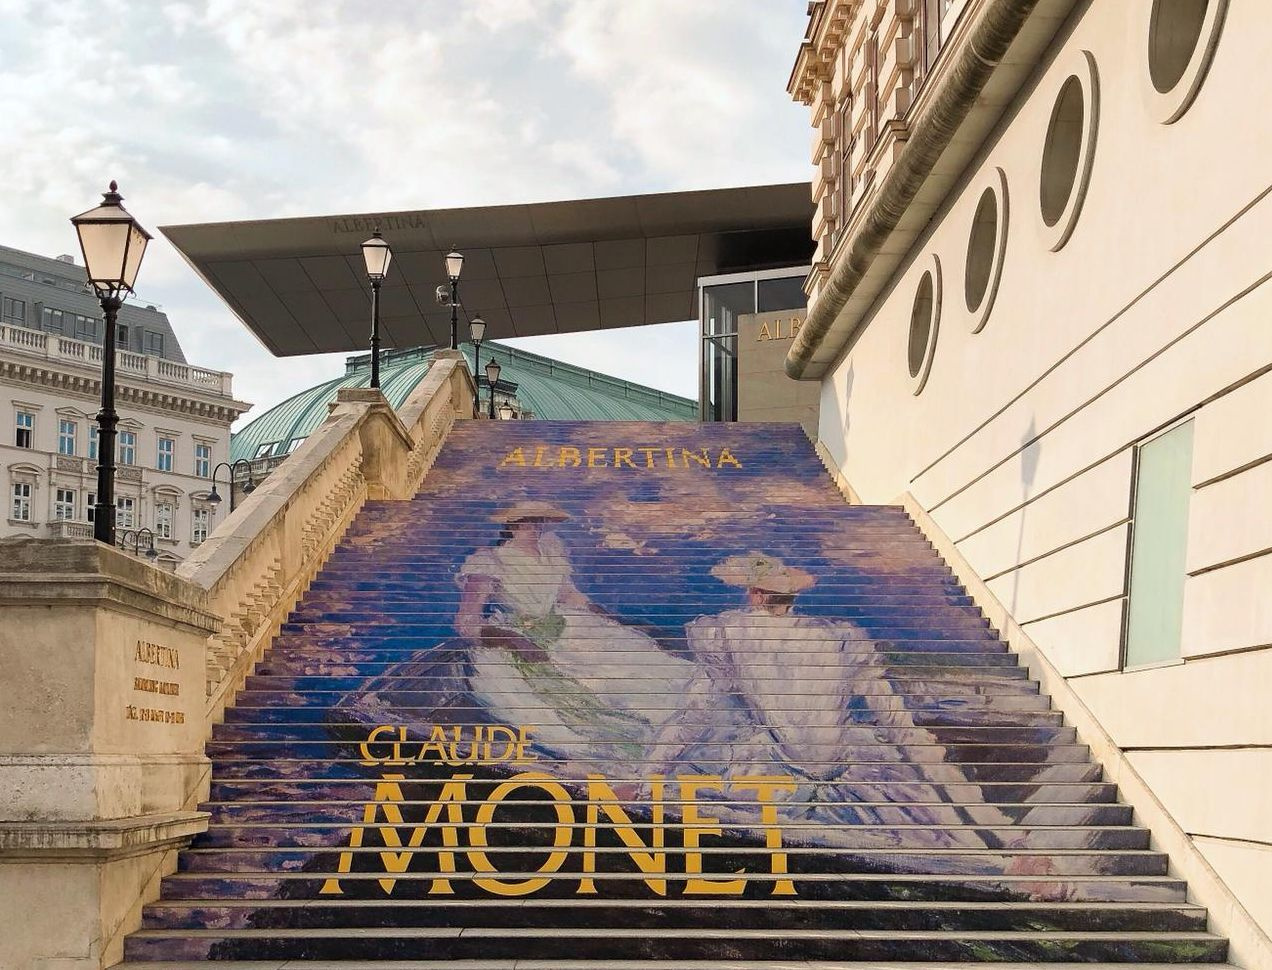 A Floating World of Claude Monet: Albertina shows a major artist's collection of works